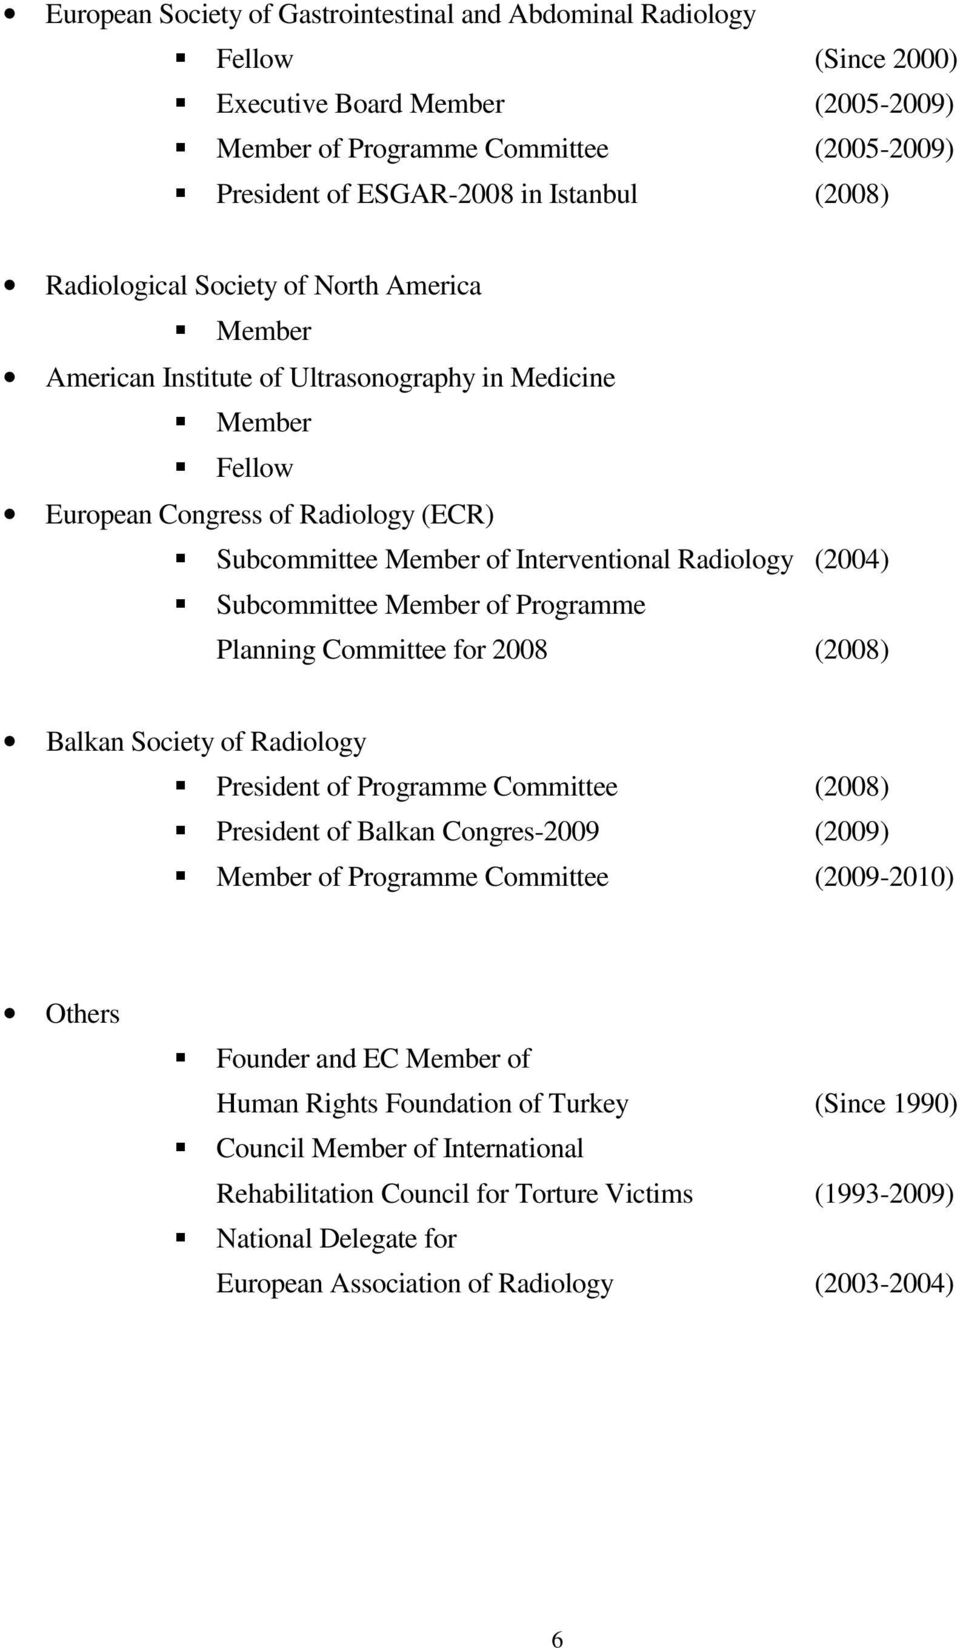 Radiology (2004) Subcommittee Member of Programme Planning Committee for 2008 (2008) Balkan Society of Radiology President of Programme Committee (2008) President of Balkan Congres-2009 (2009) Member